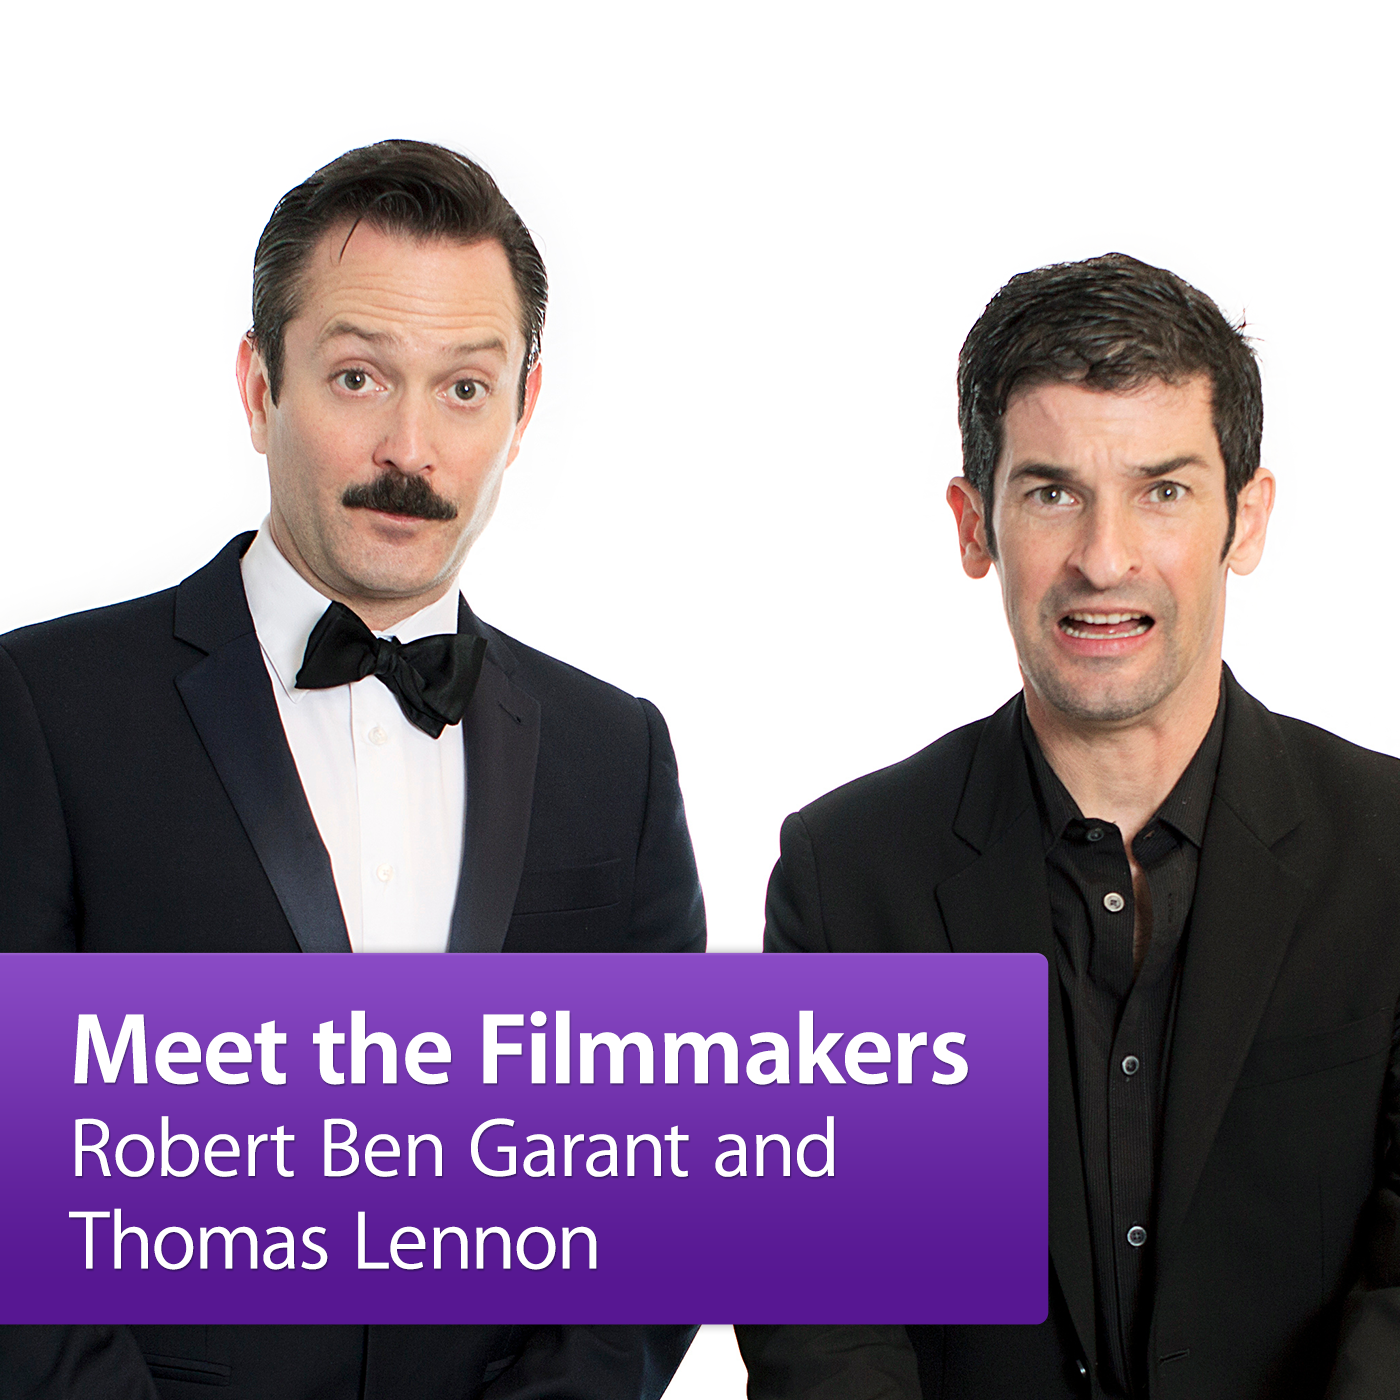 Robert Ben Garant and Thomas Lennon: Meet the Filmmaker